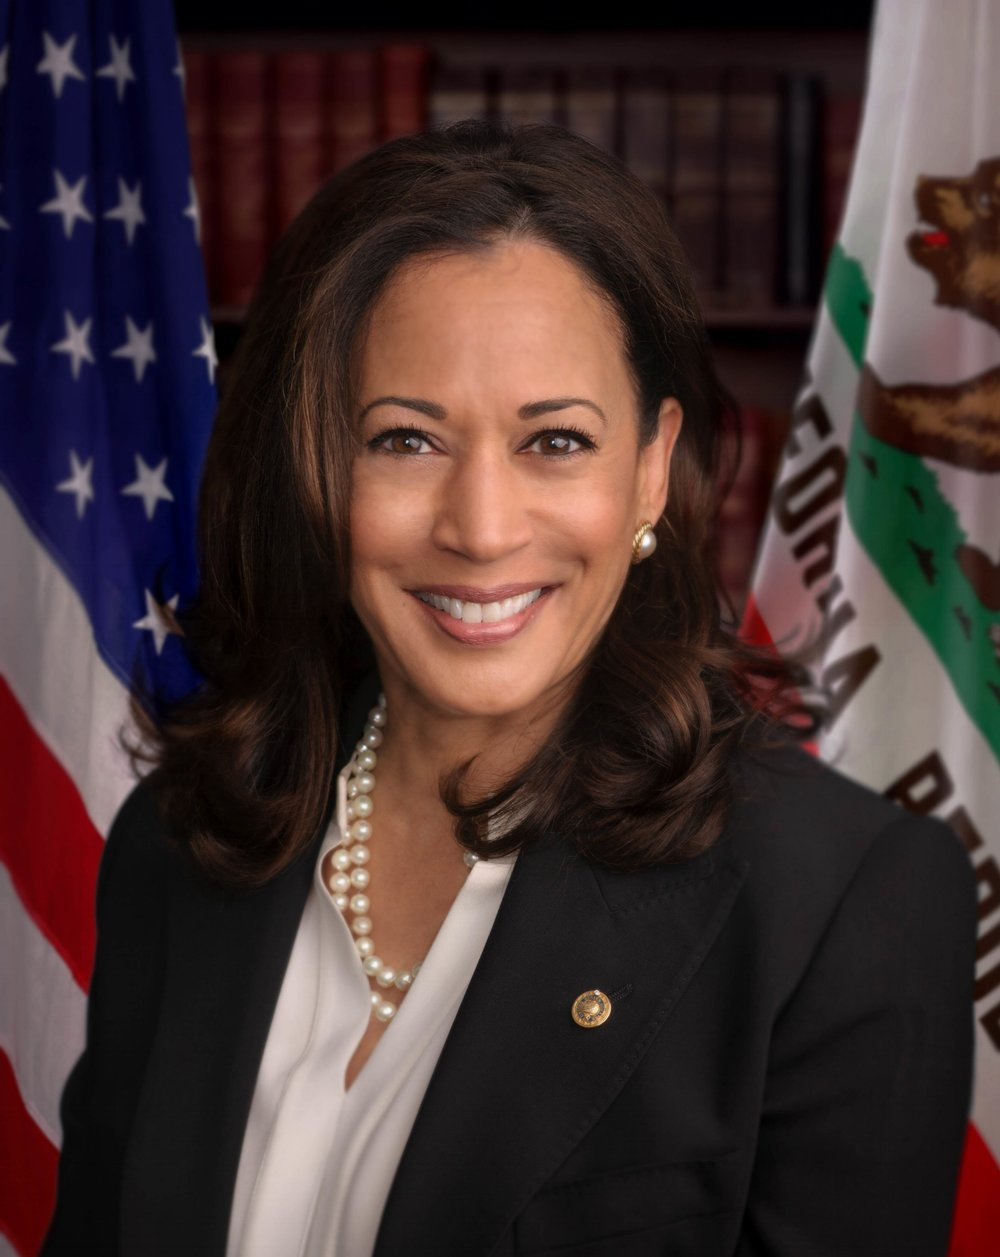 Kamala_Harris_official_photo.jpg